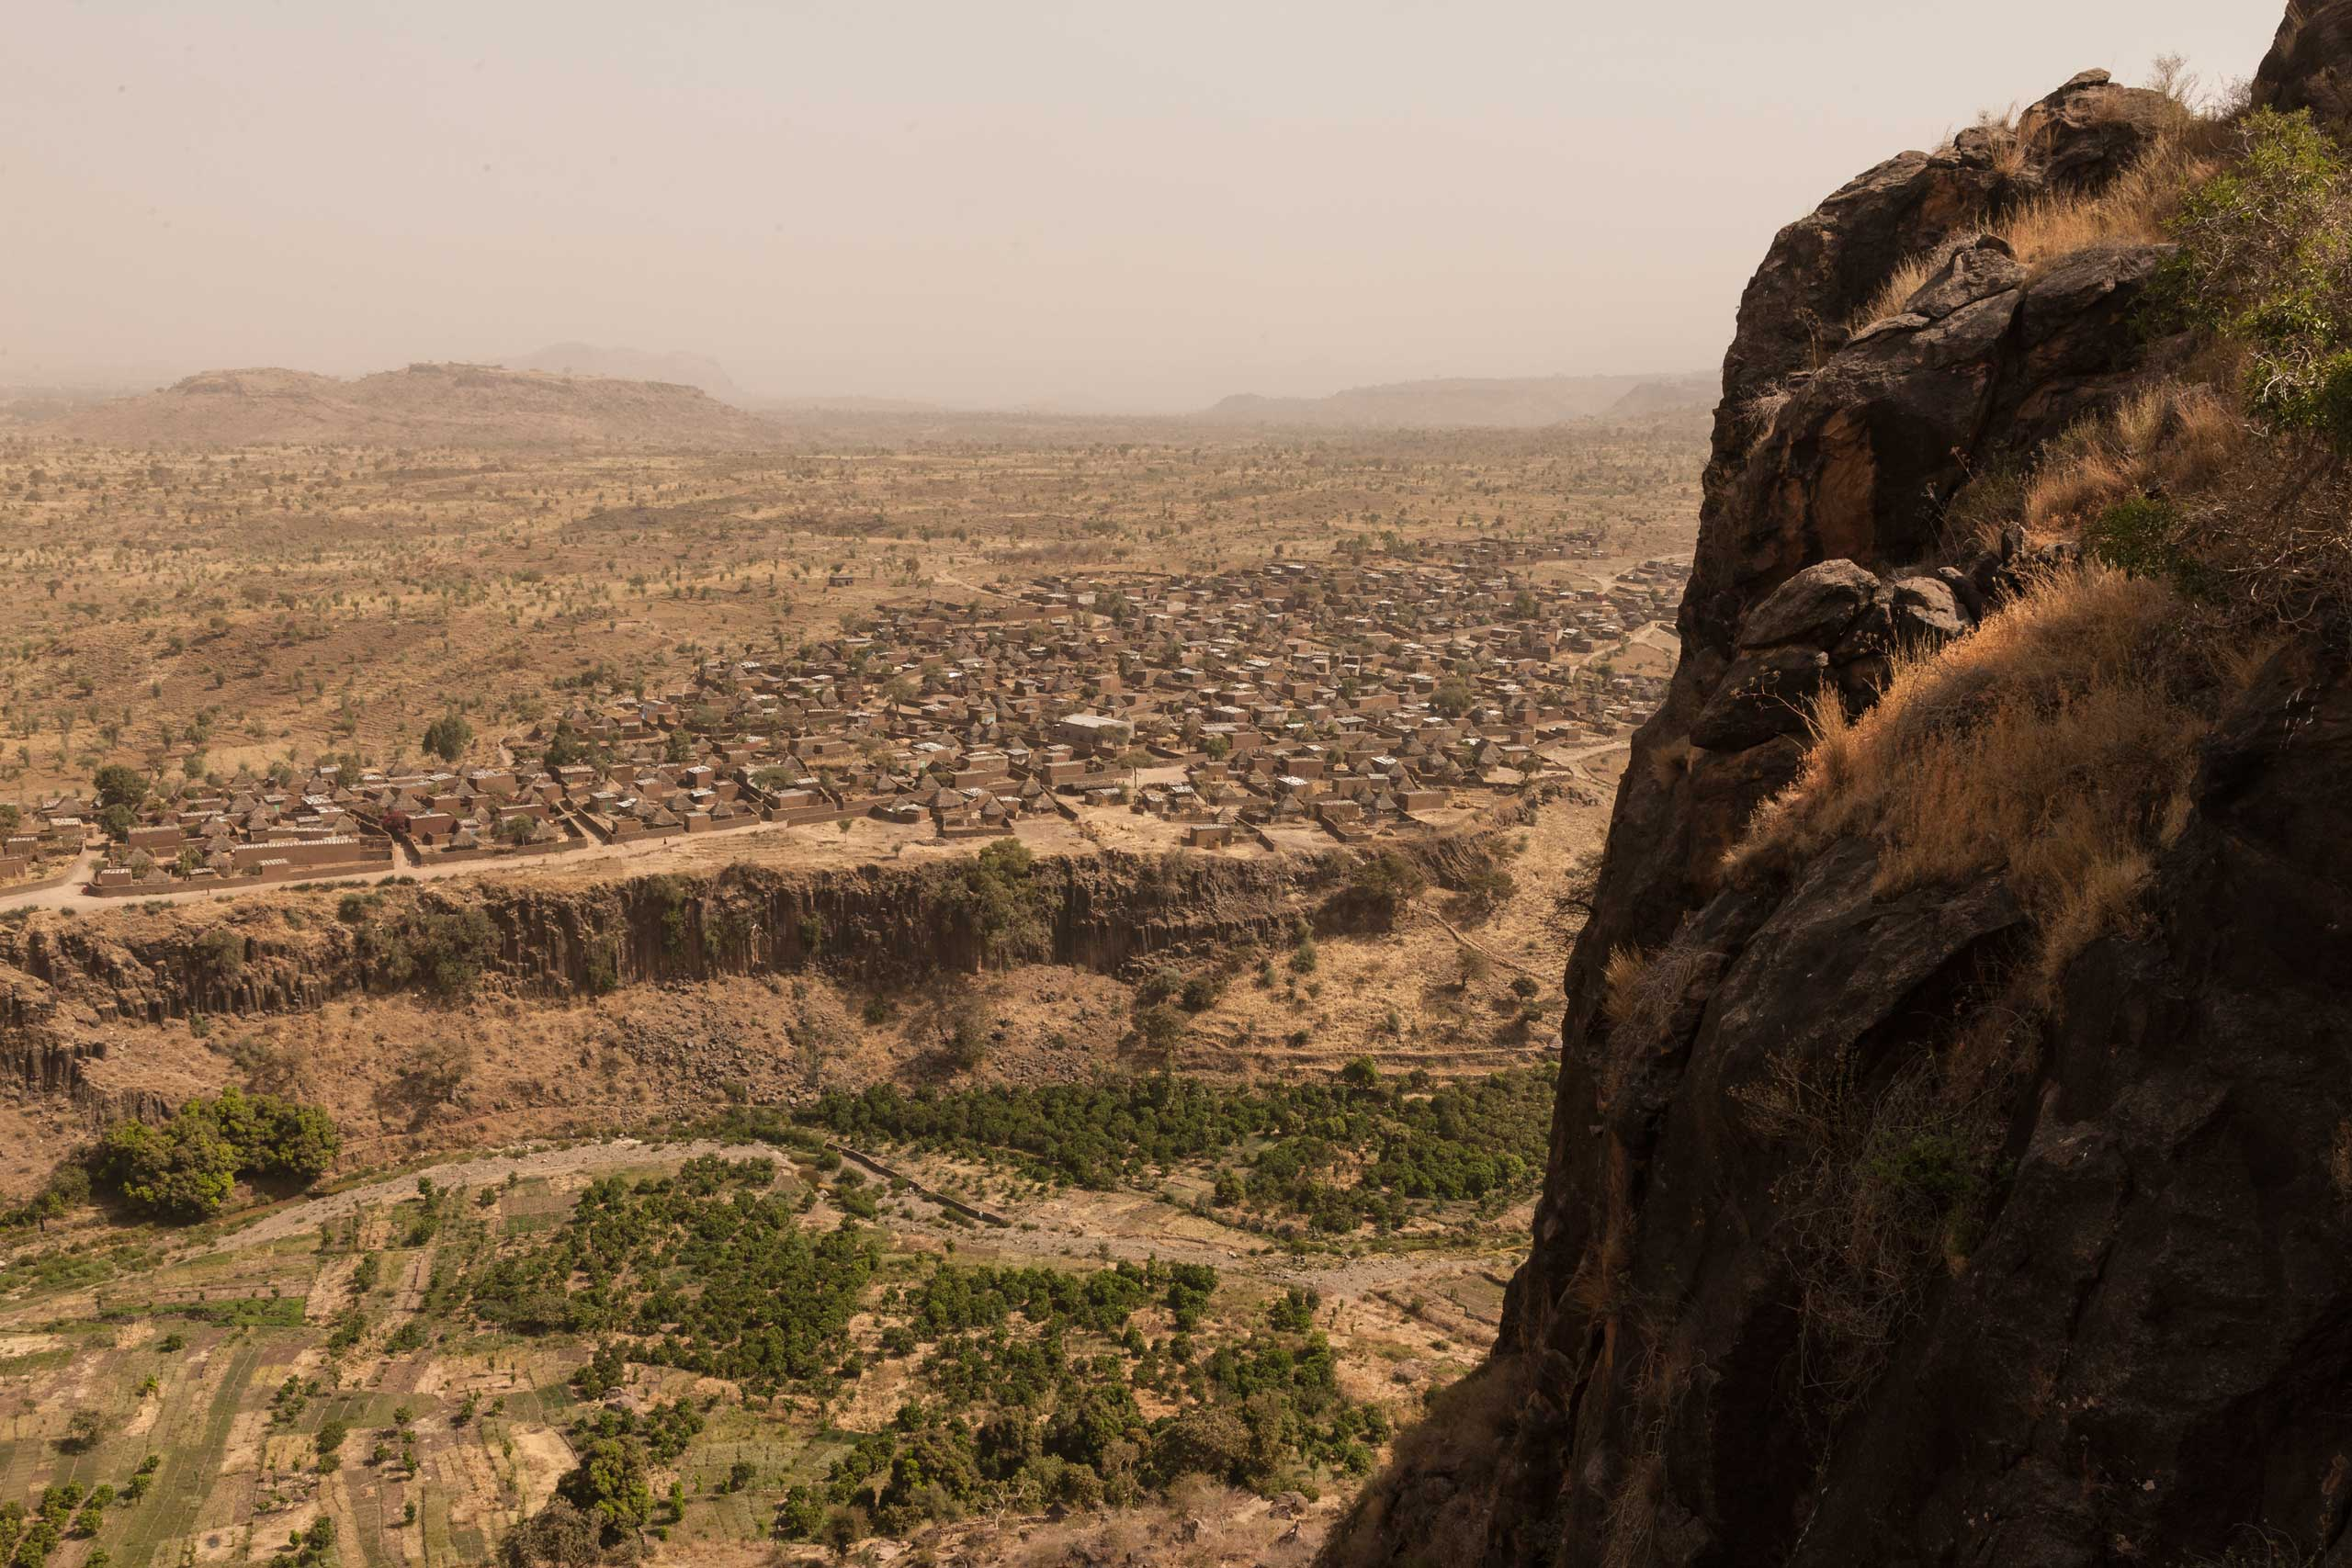 An overhead view from the rebel territory that overlooks the town of Kroun in Jebel Marra, Central Darfur, Sudan, on March 4, 2015.